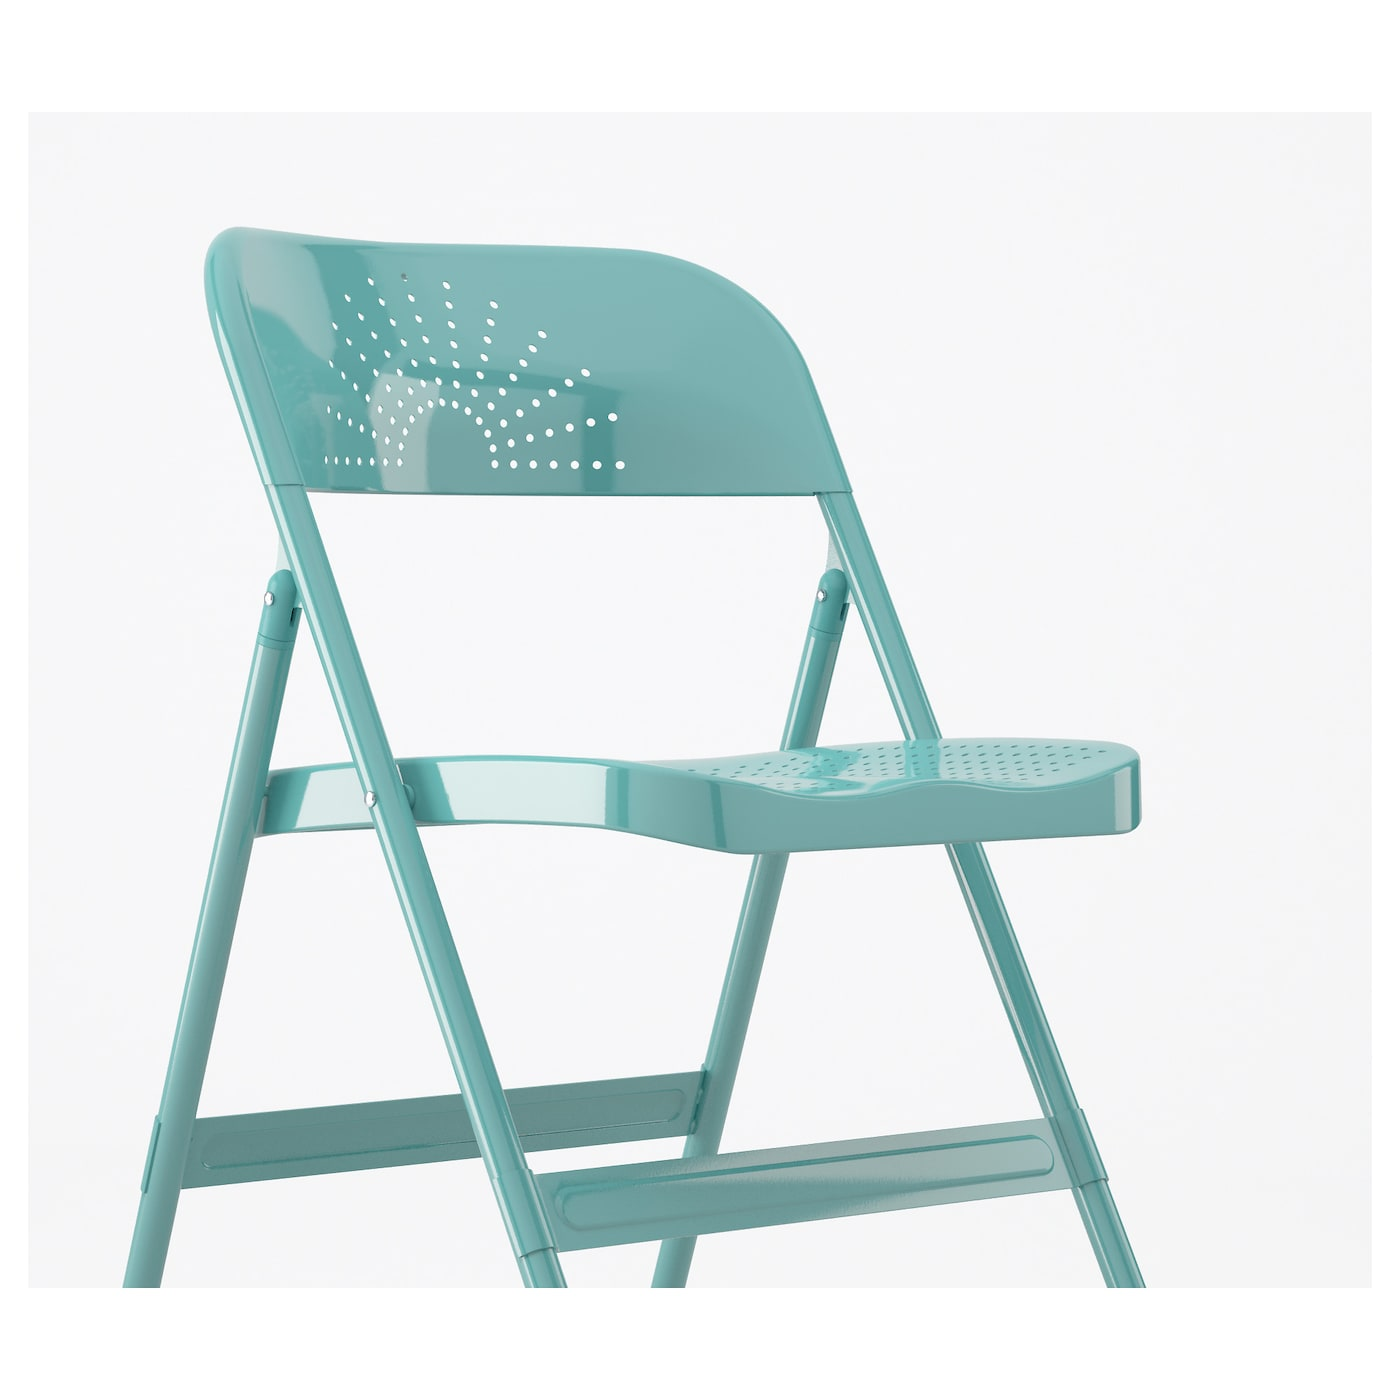 IKEA FRODE Folding Chair You Can Fold The Chair, So It Takes Less Space When